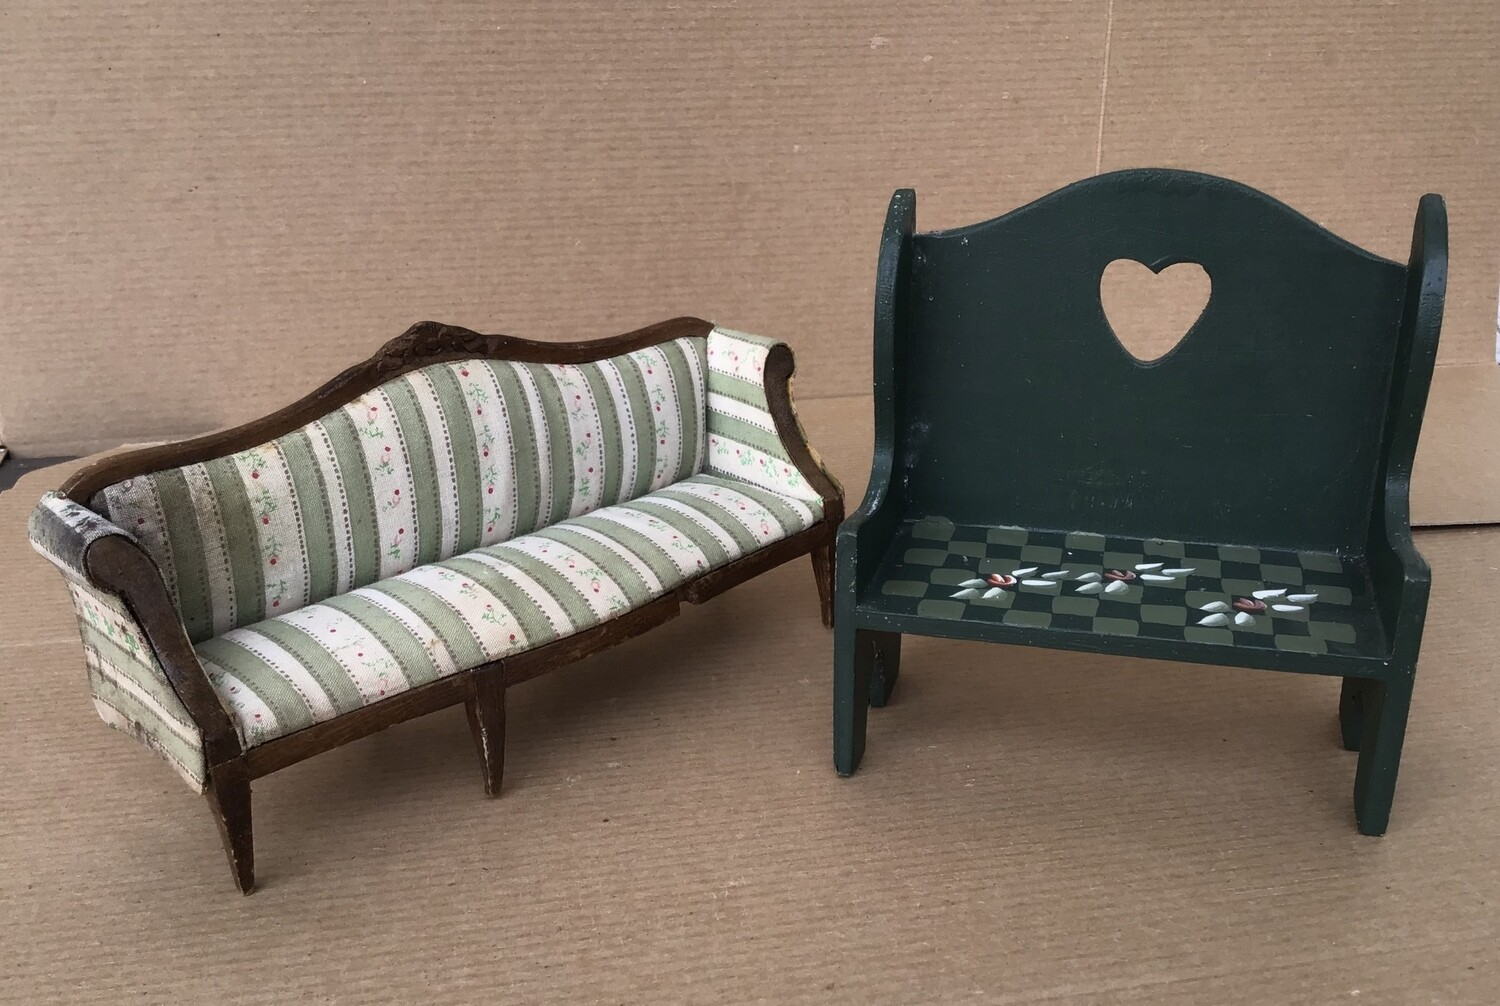 Miniature Furniture- Couch and Bench